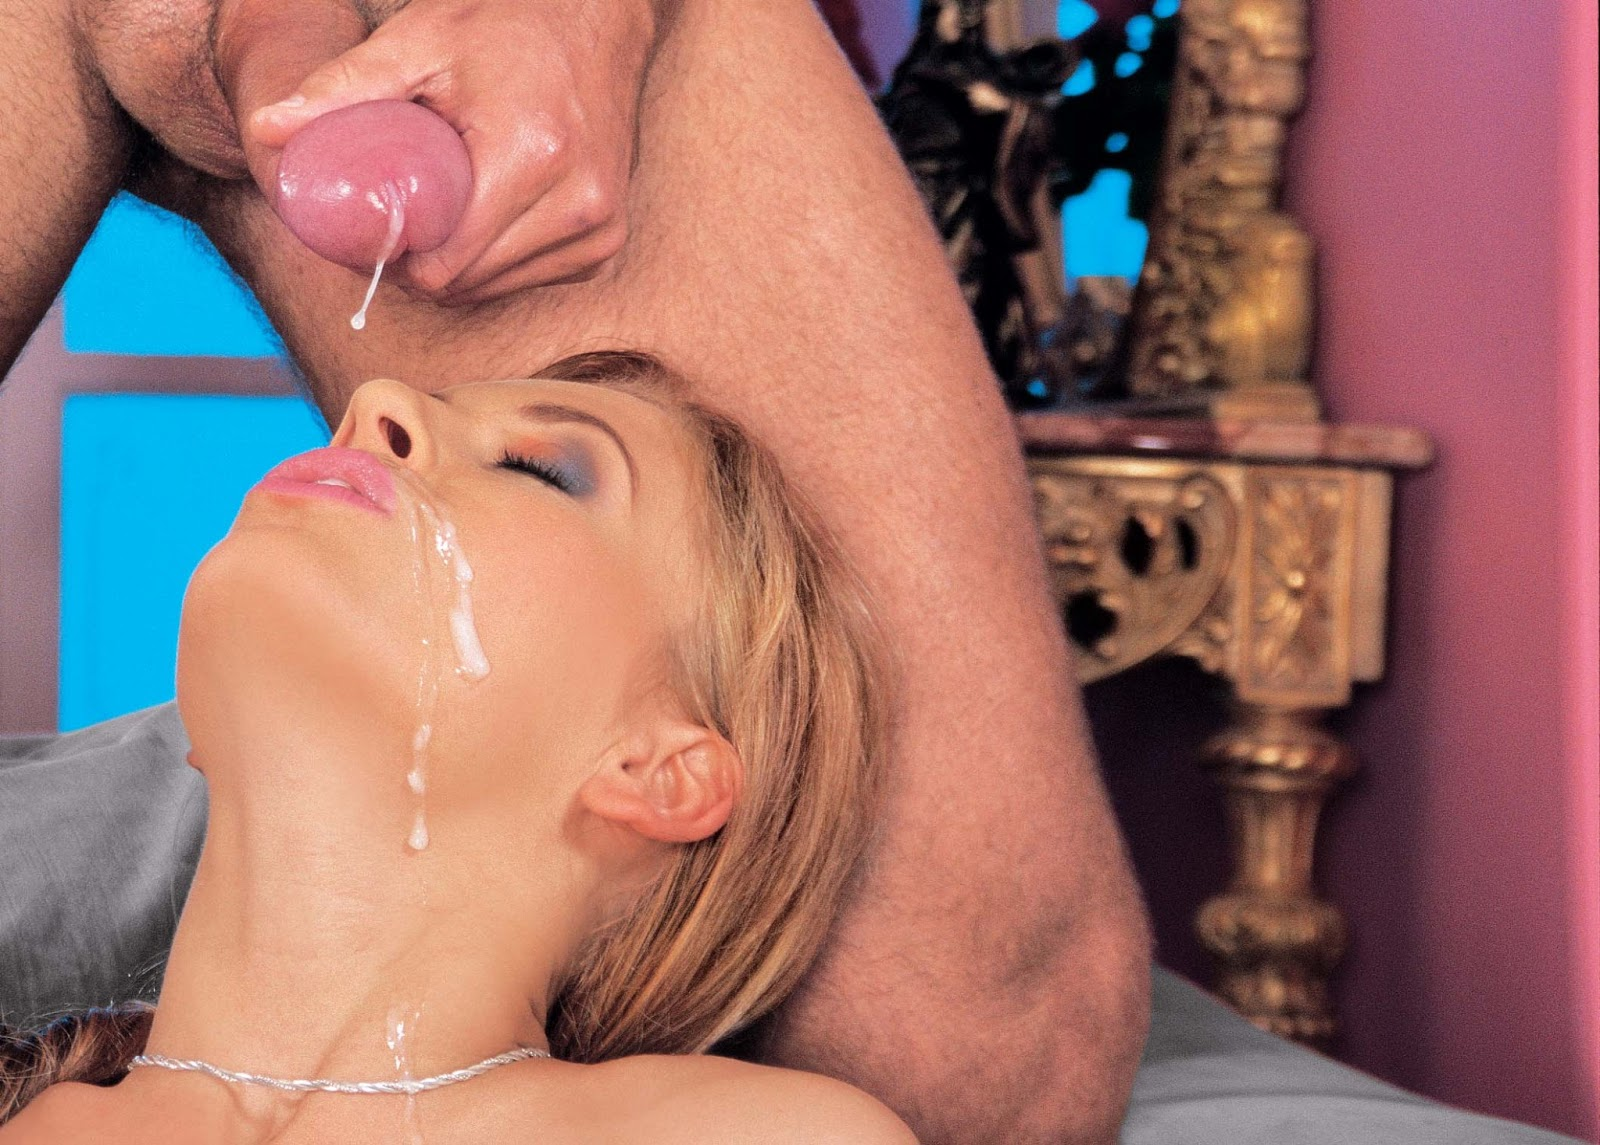 Private Magazine - Got Milk? - The Best Cumshots 3